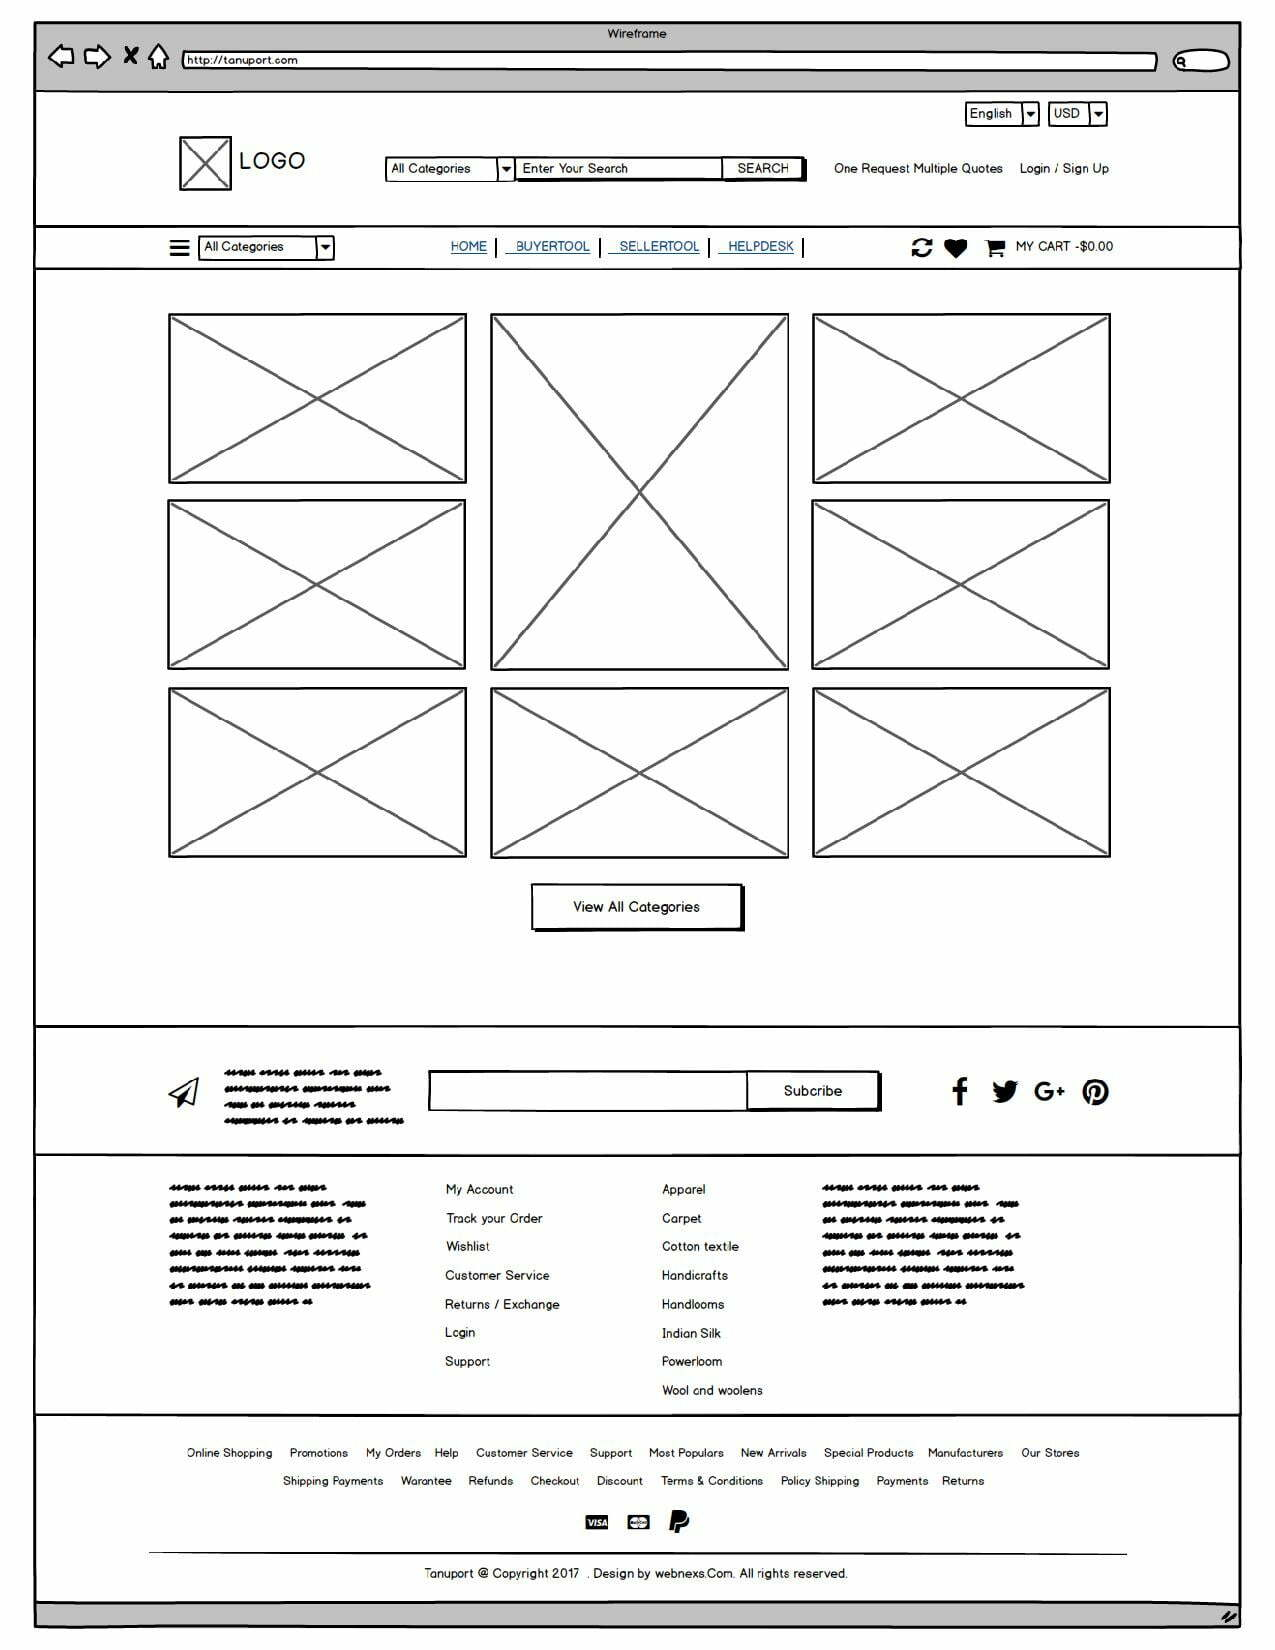 Tanuport Wireframe by Webnexs